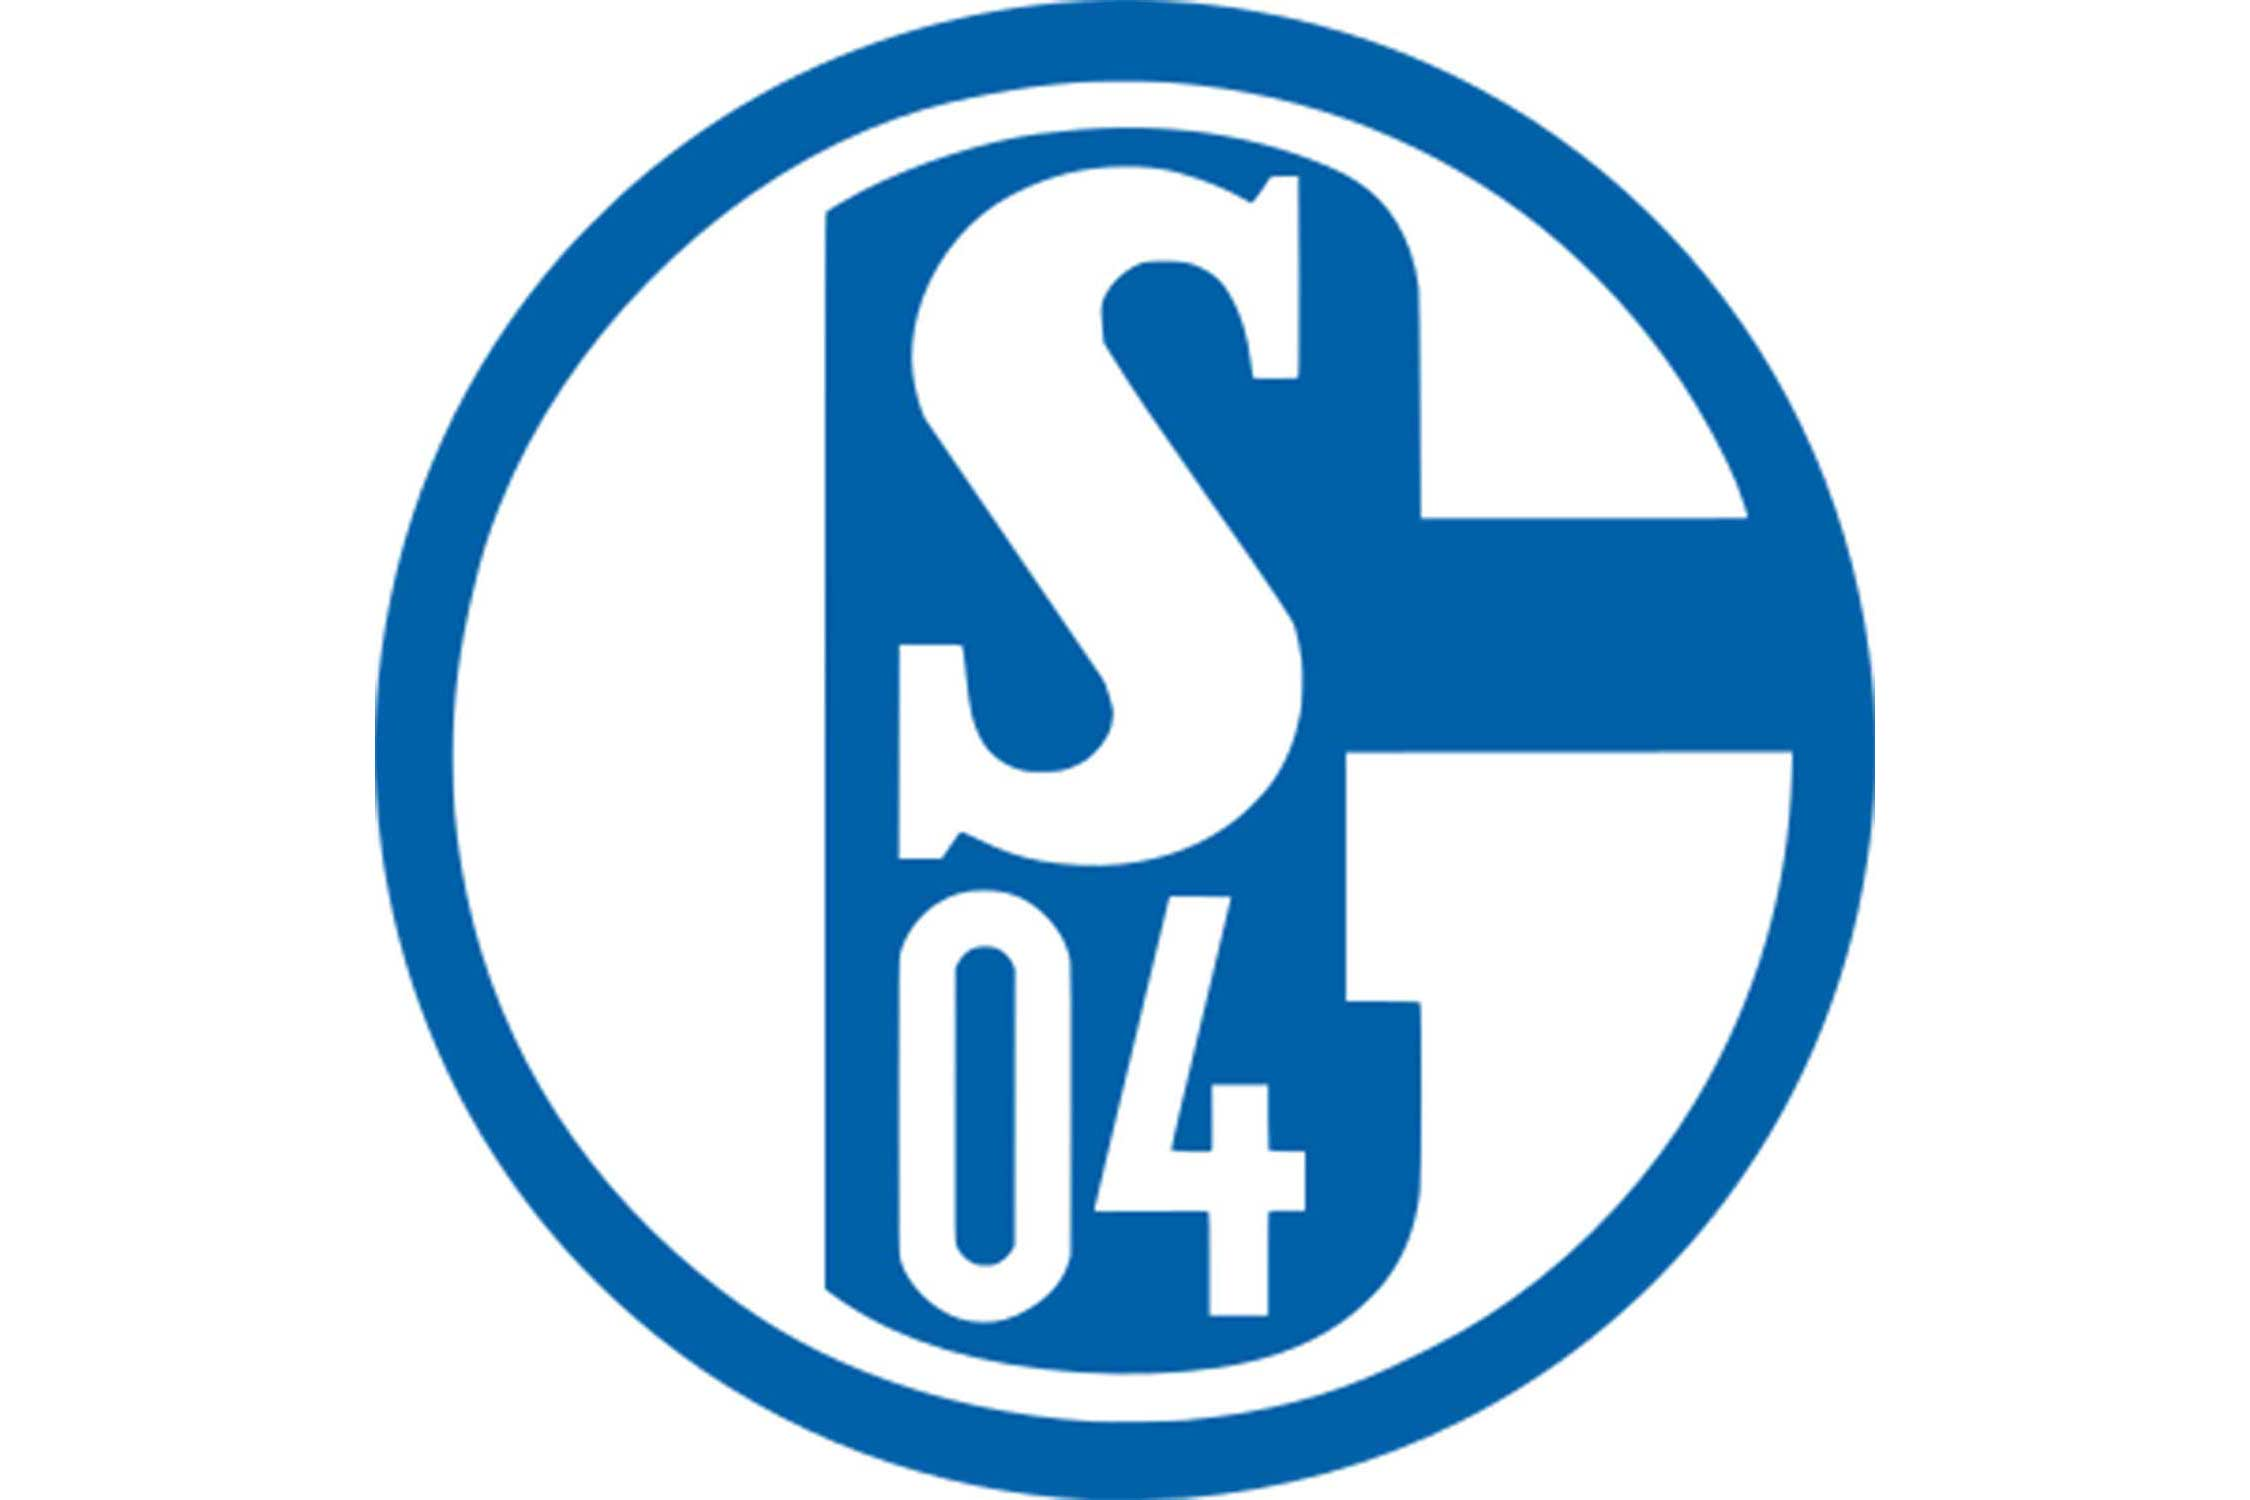 Surrounding the S (representing the name of the club) and the 04 (representing 1904, the club's founding year) is a large letter G. That stands for Gelsenkirchen, the city where Schalke 04 is based.